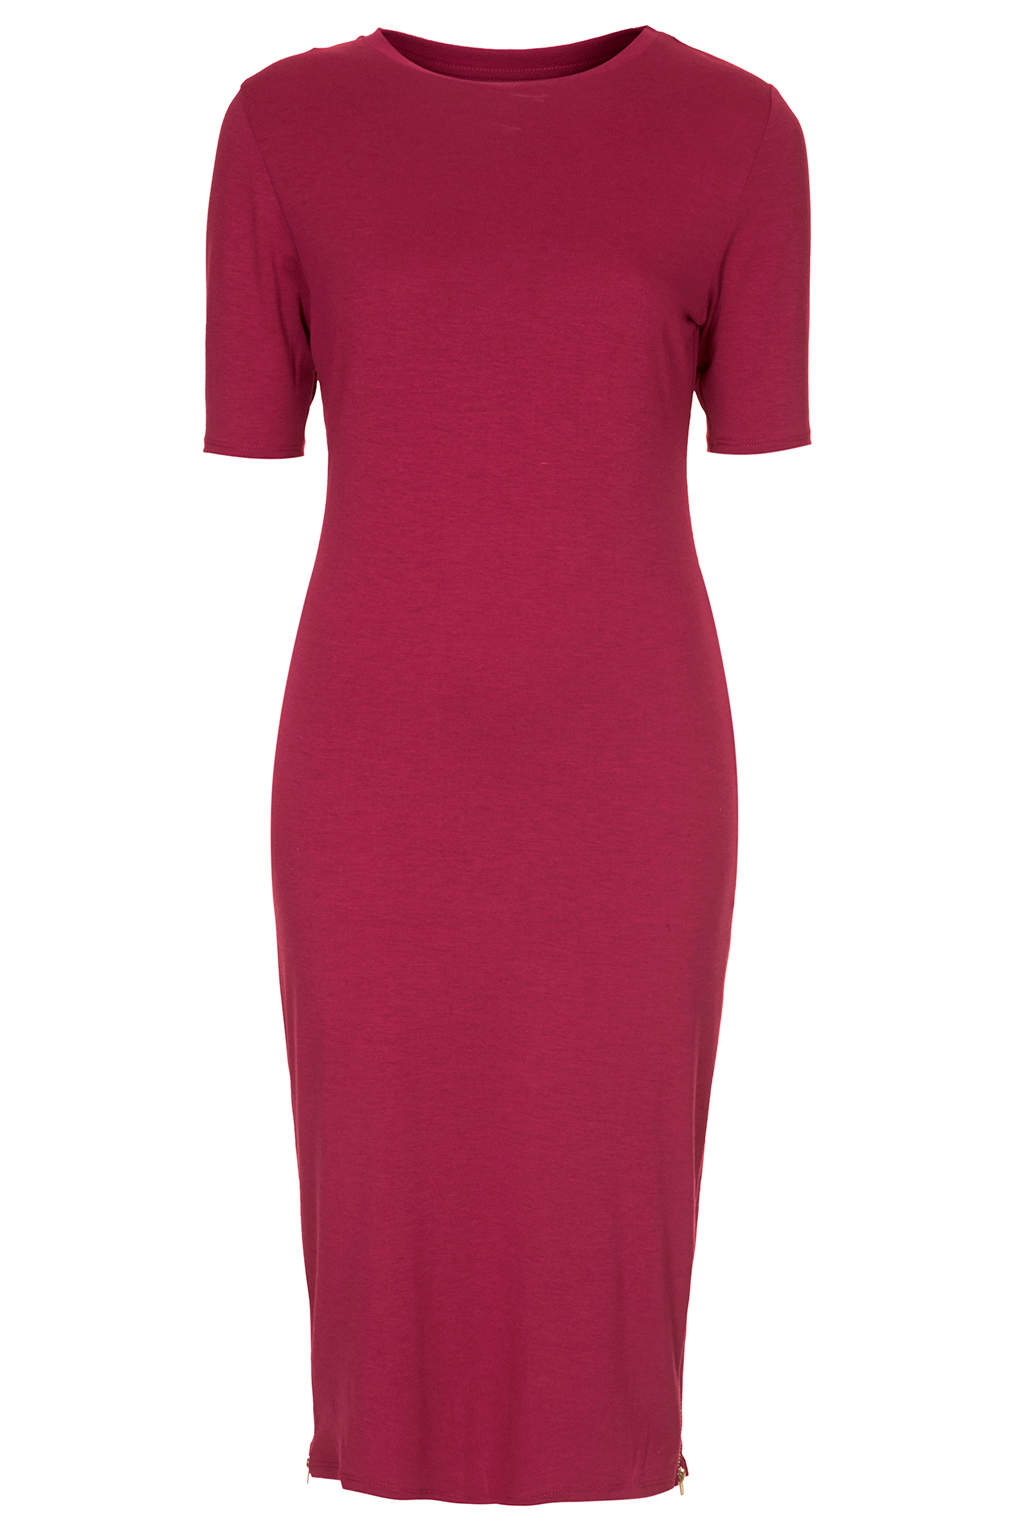 Topshop womens zip side midi dress oxblood in red oxblood for Womens denim shirts topshop